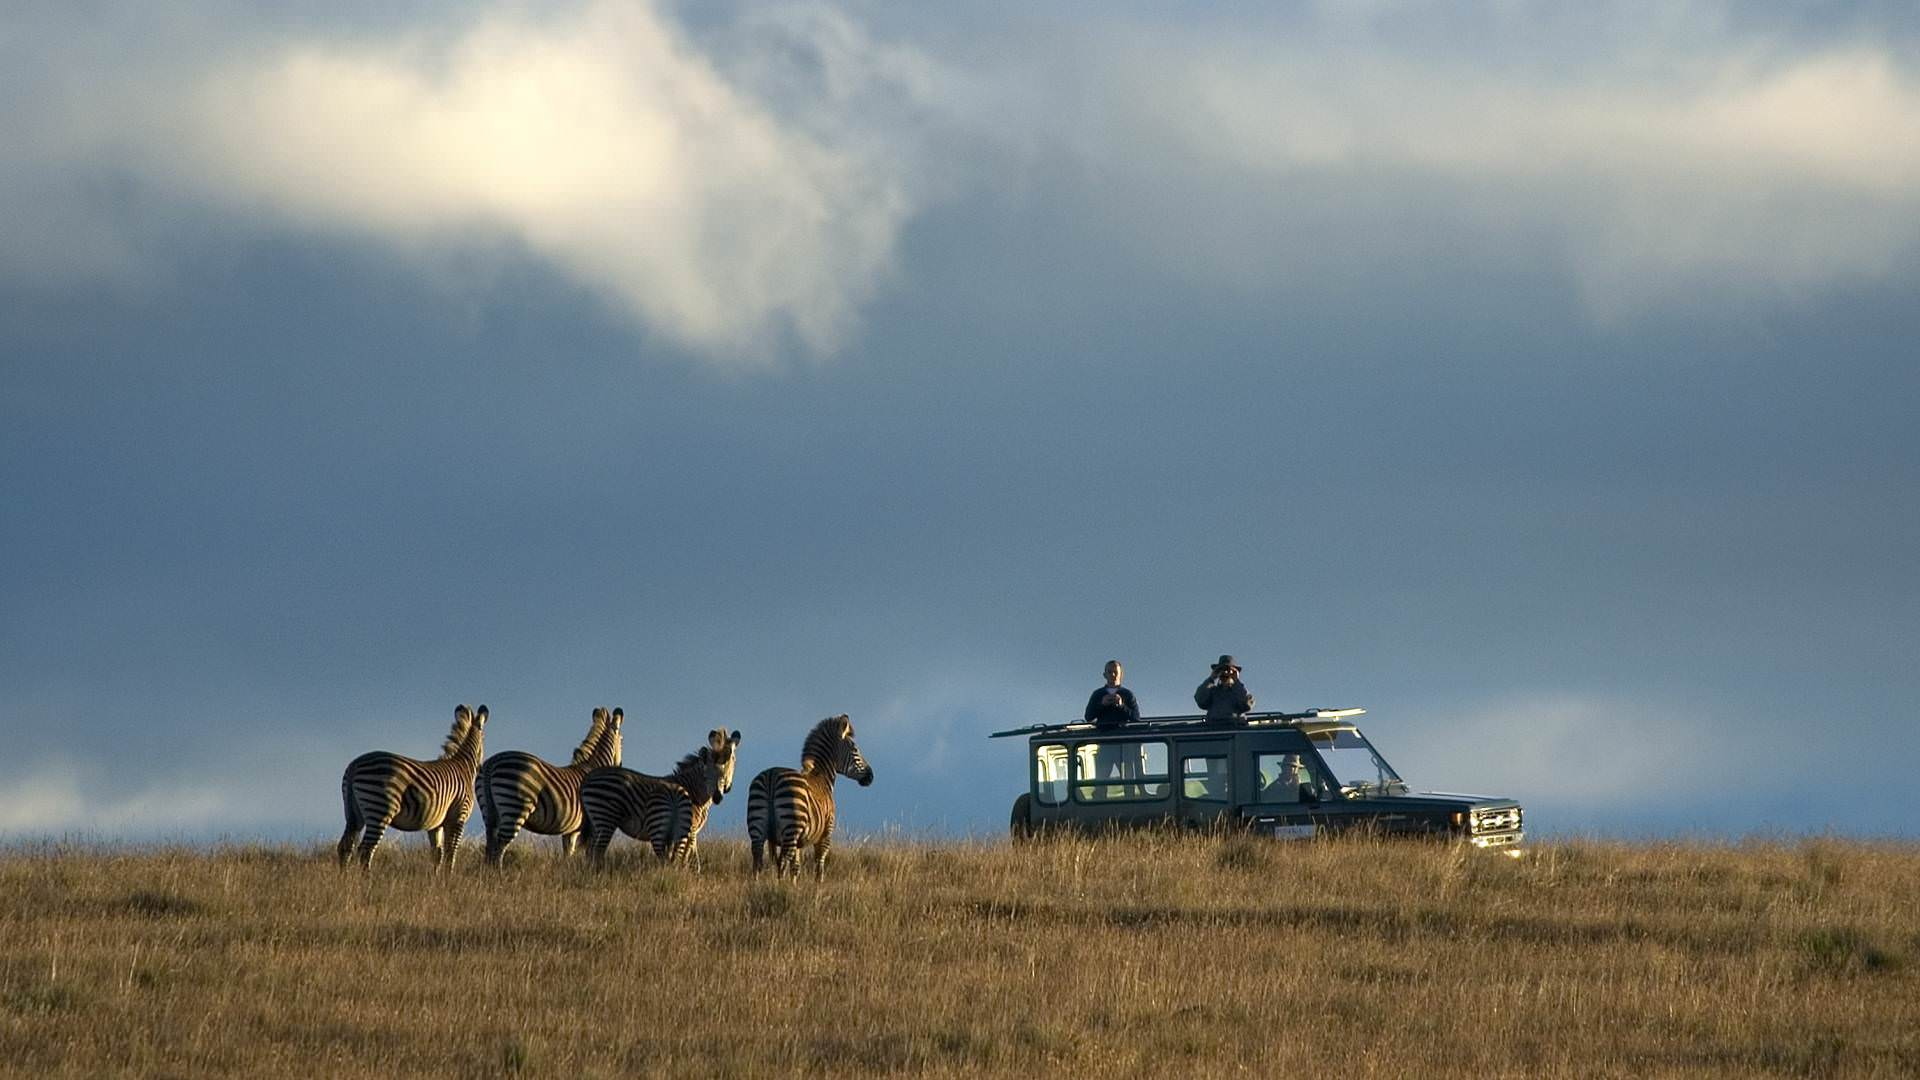 chelinda-camp-nyika-national-park-central-african-wilderness-safaris-malawi-afrika